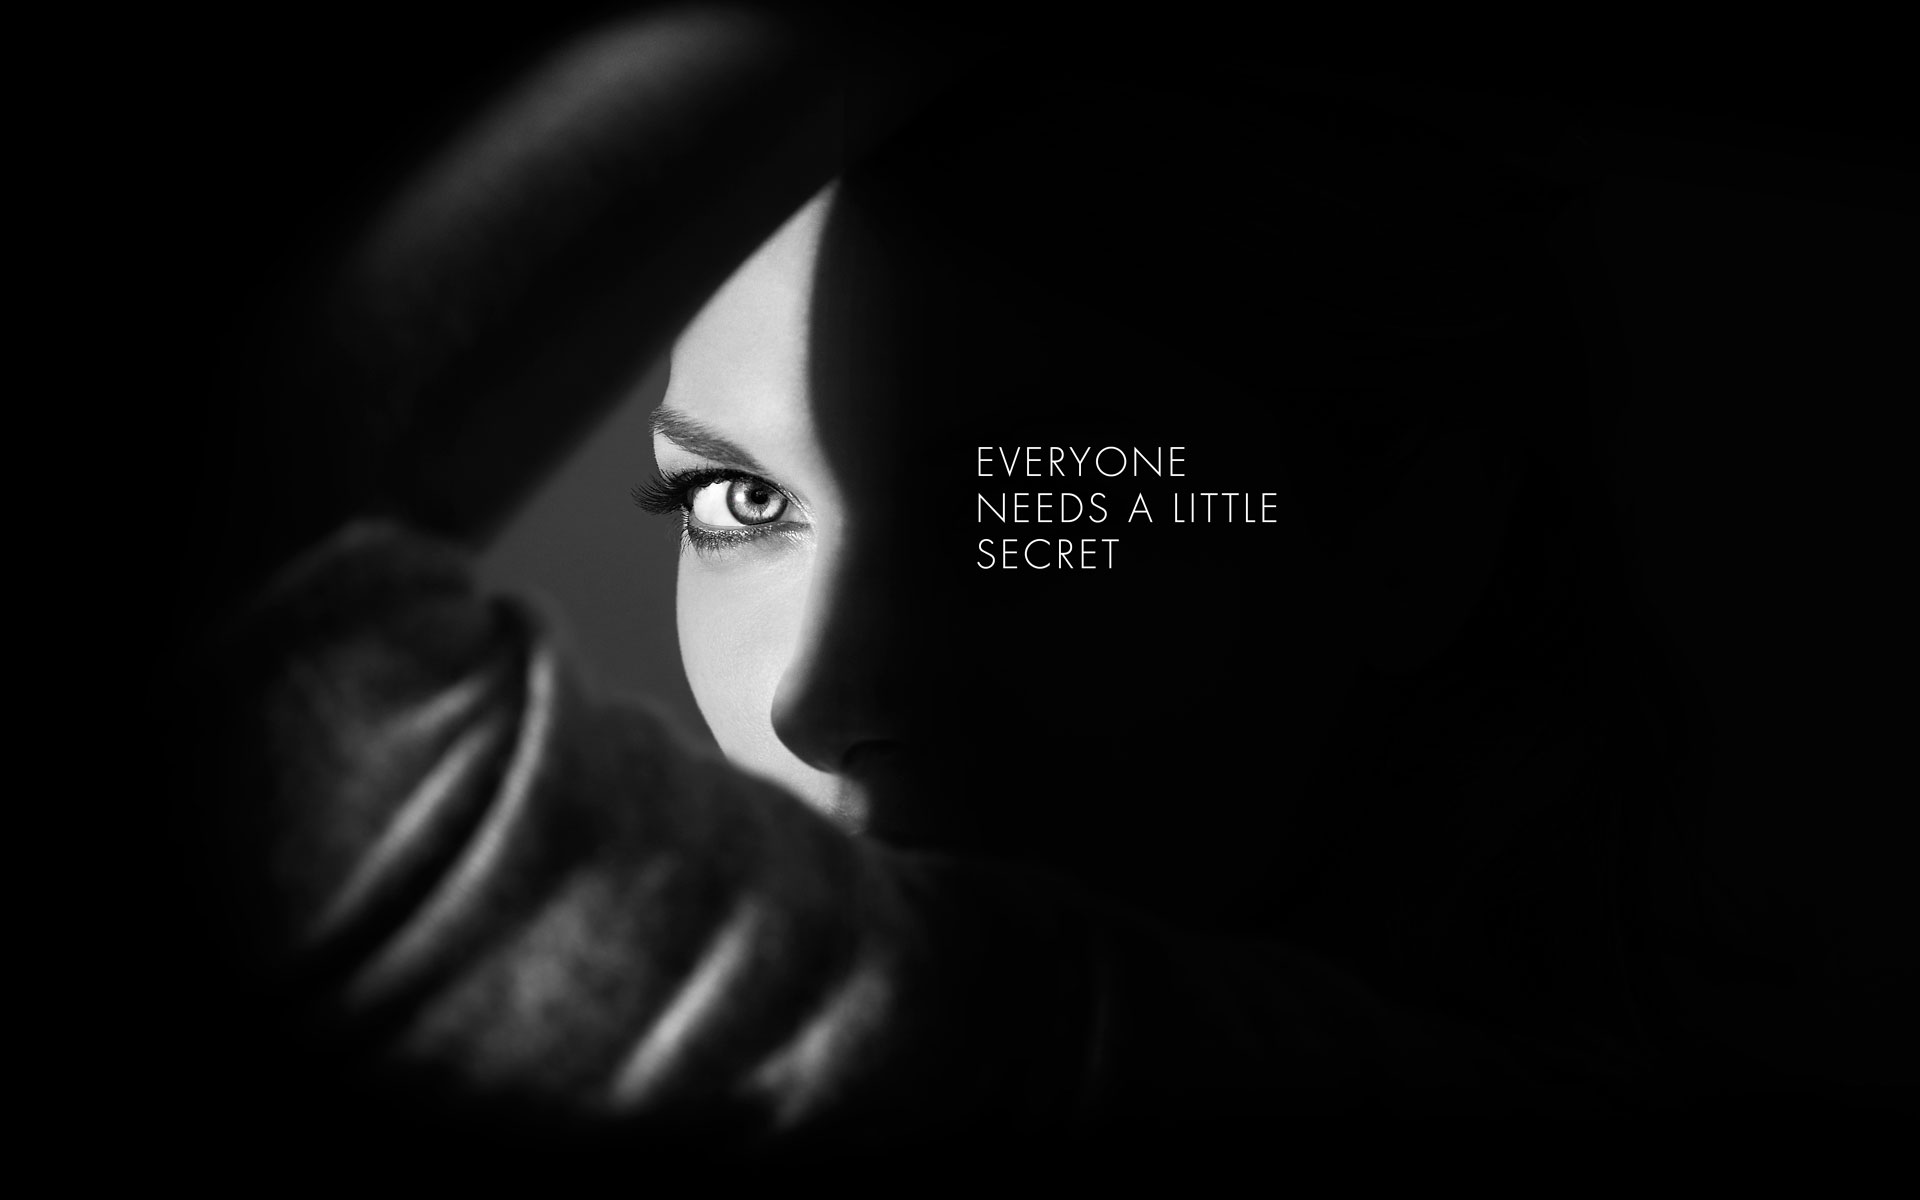 Everyone needs a little secret